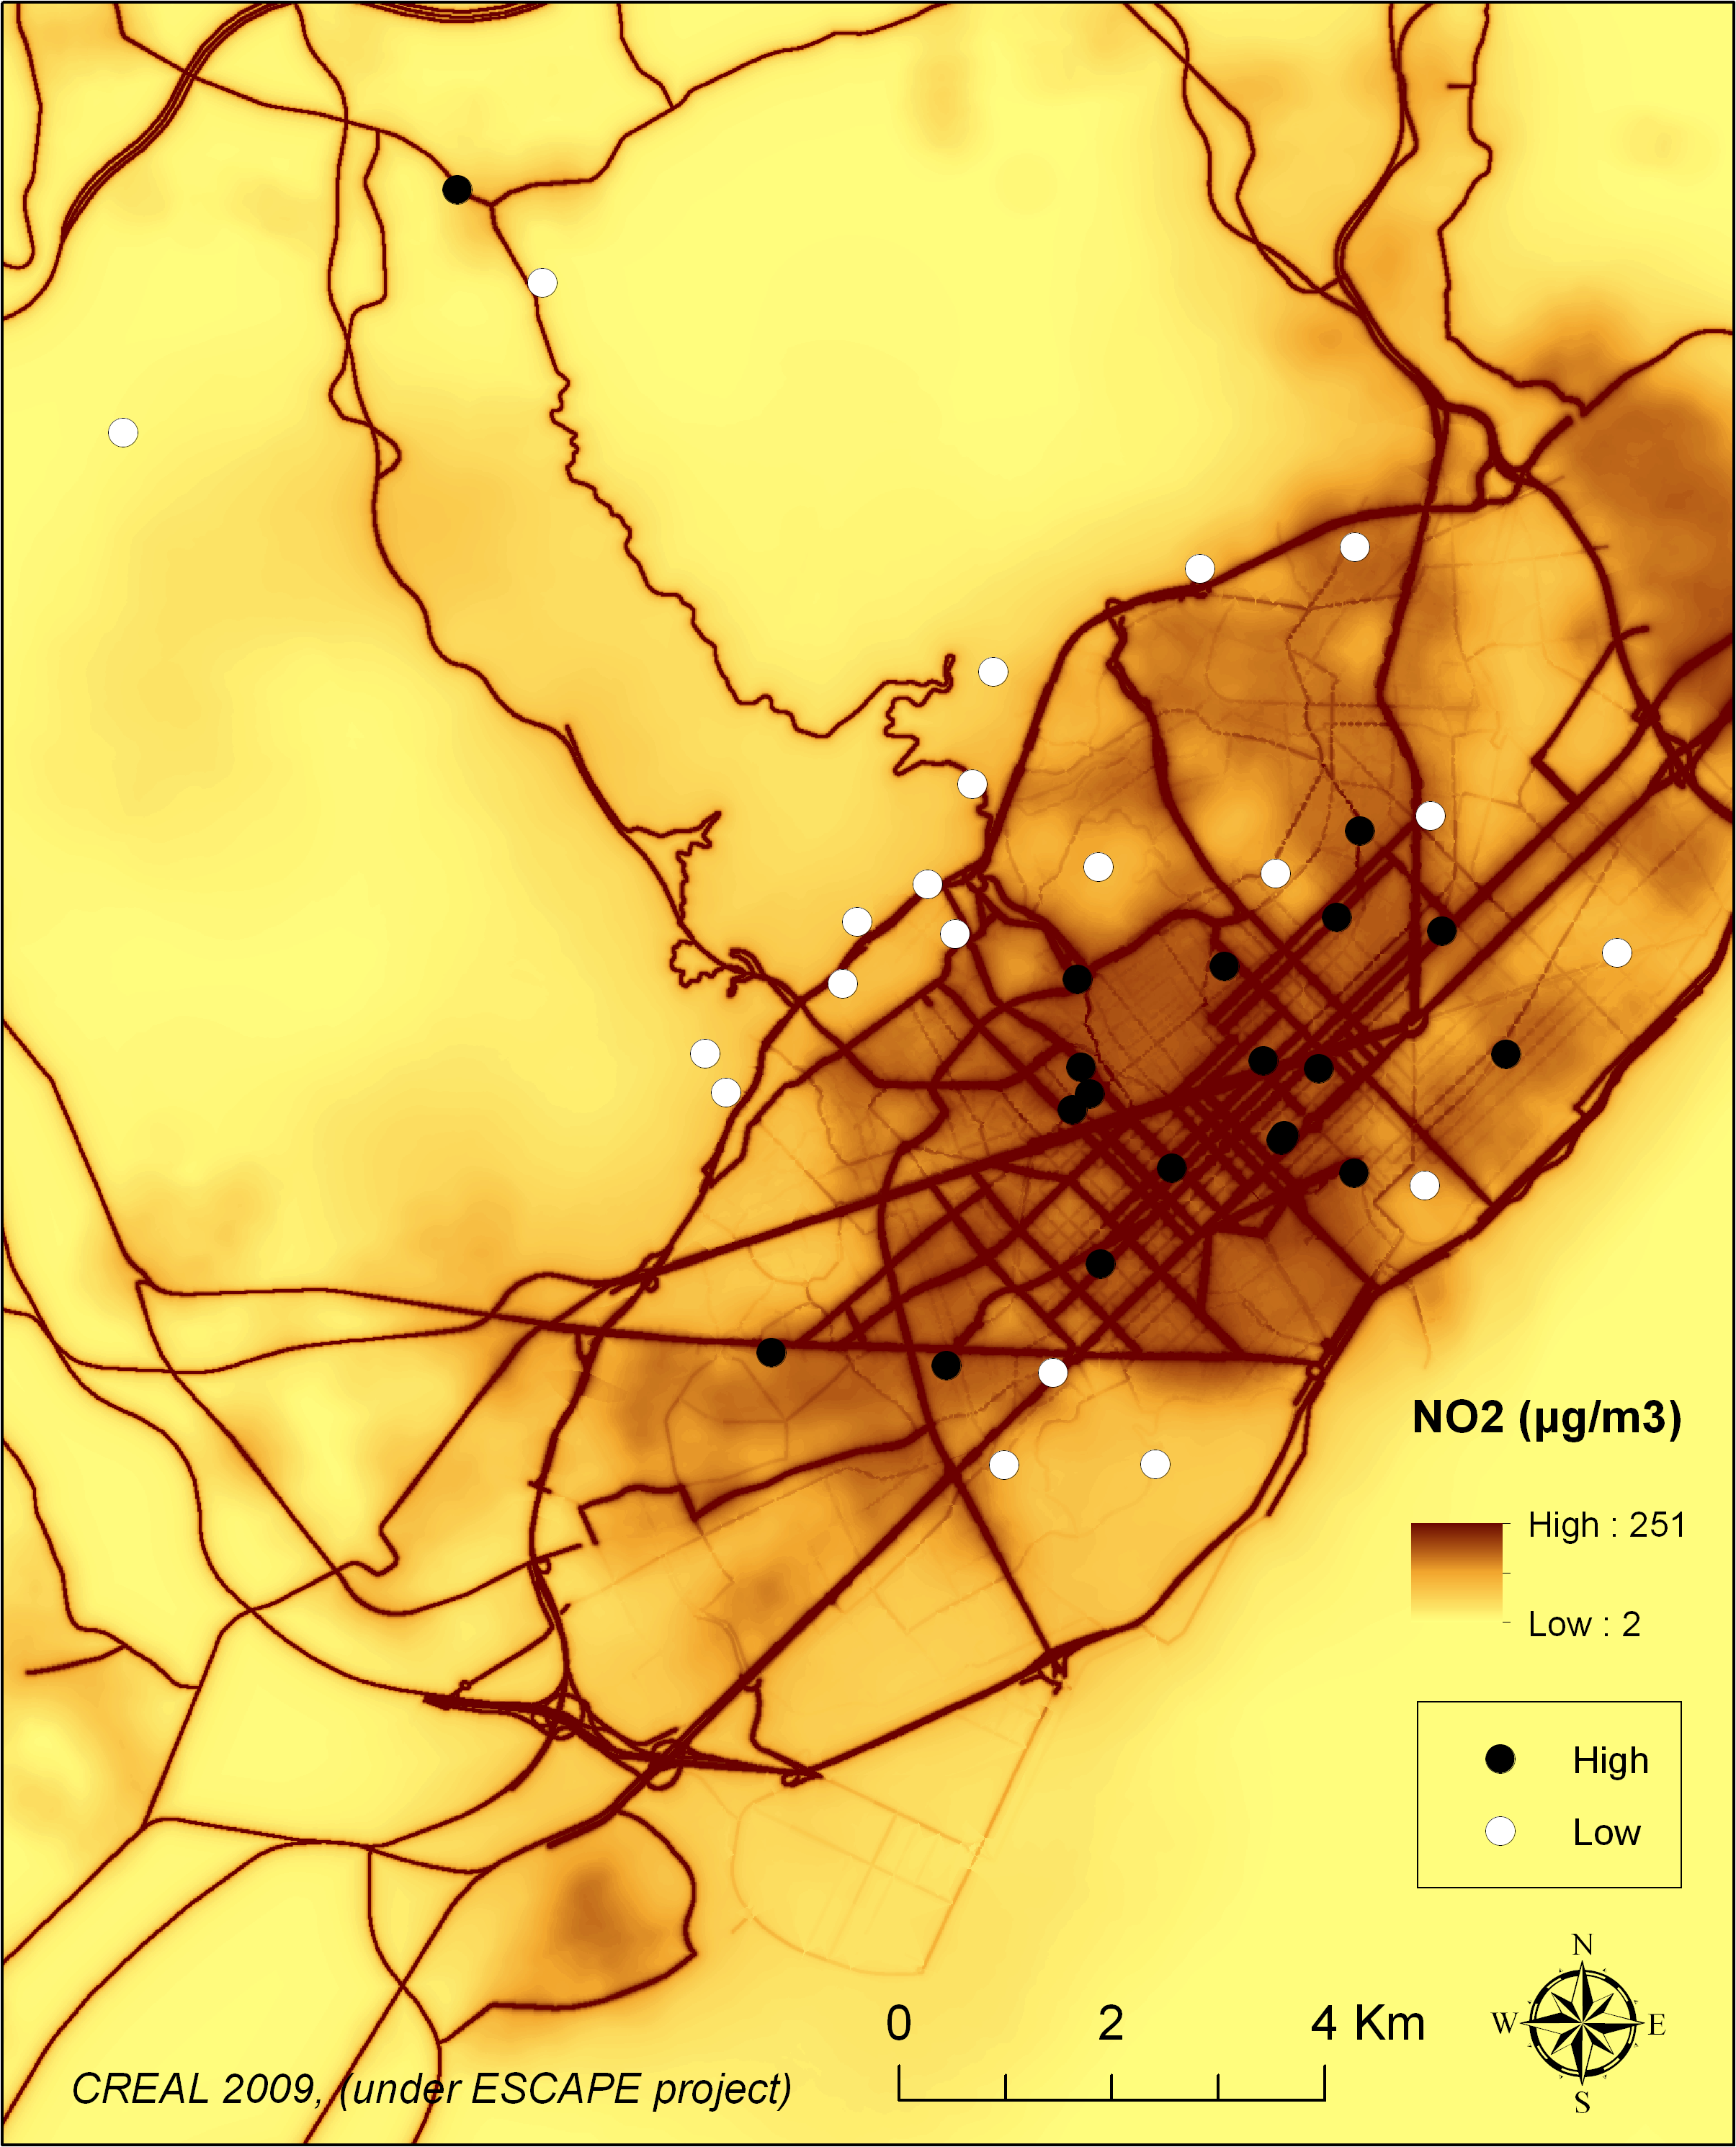 Map of Barcelona and the schools by high or low air pollution by design.